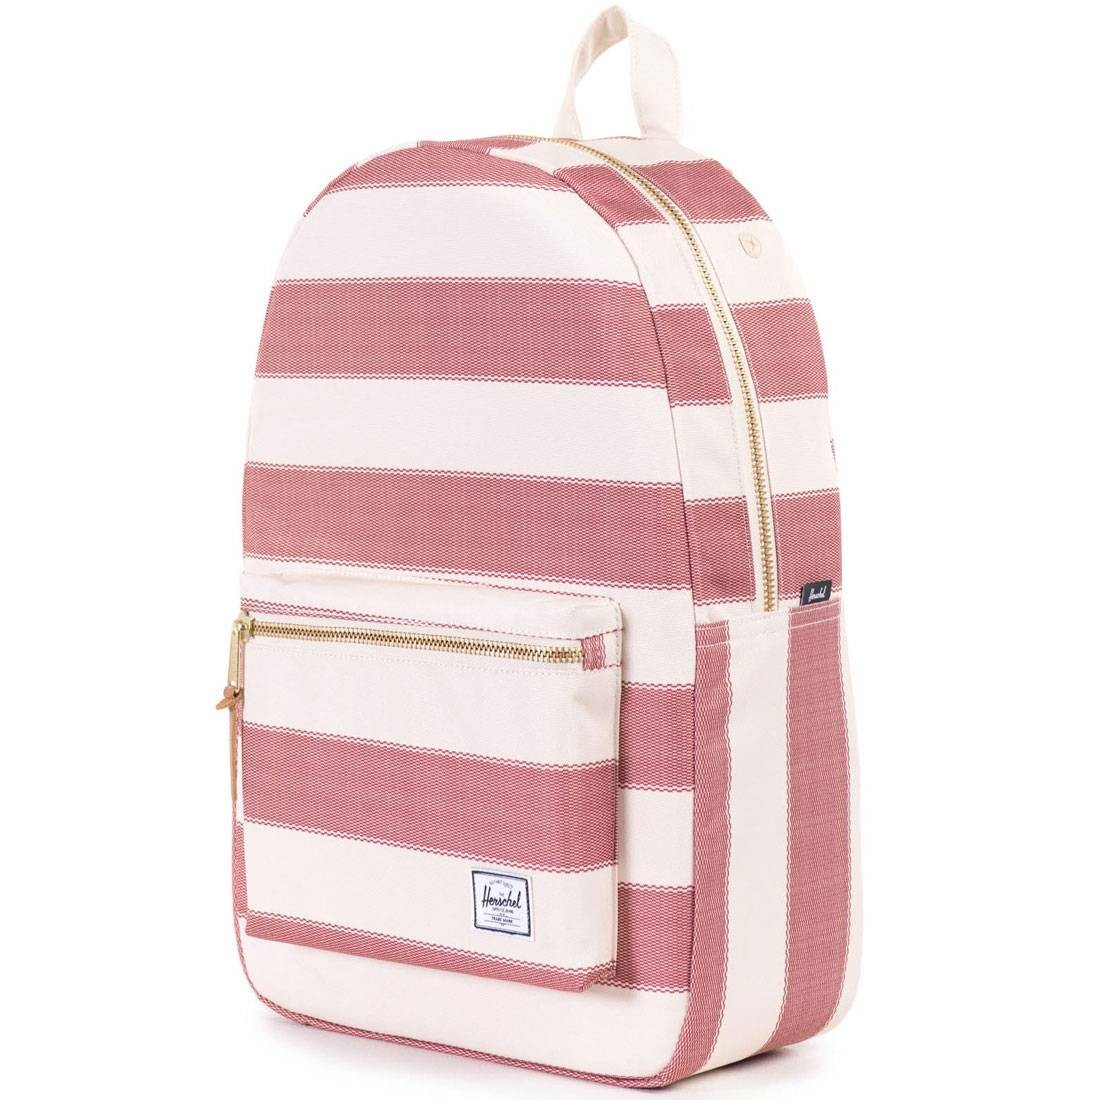 5d6bfae52bc Herschel Supply Co Settlement Backpack - Poly white natural fouta